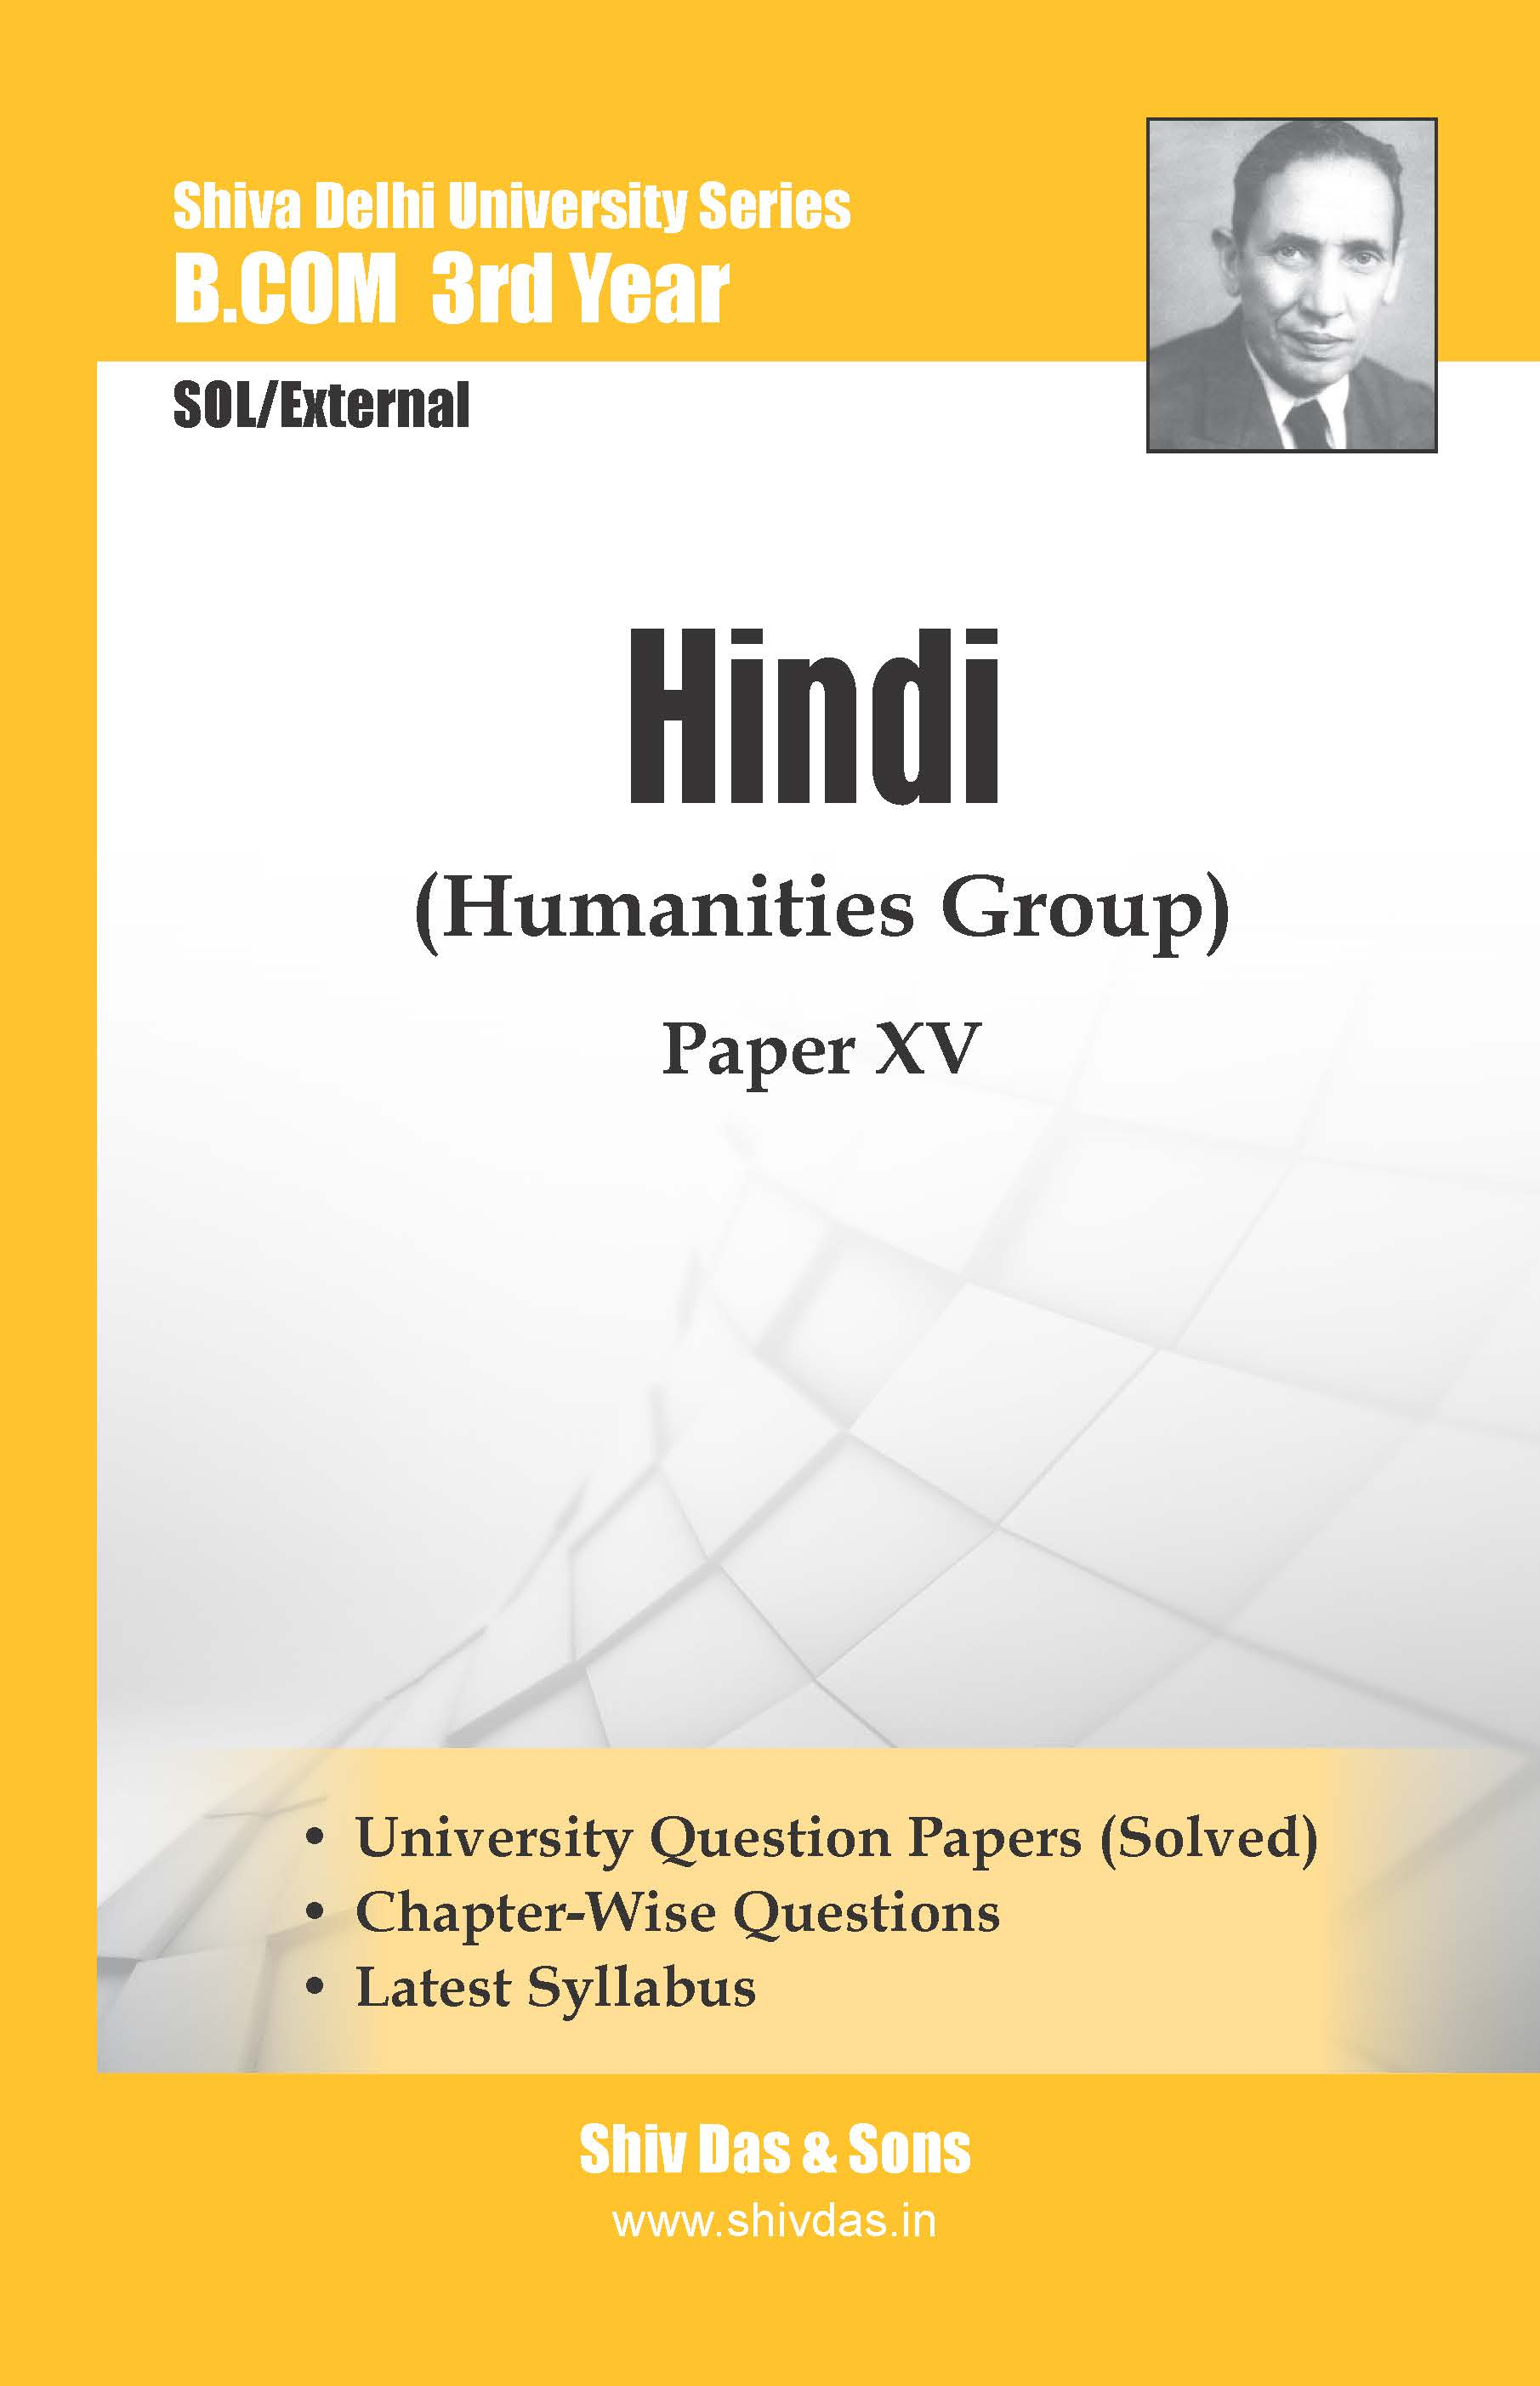 B.Com-3rd Year-SOL/External-Hindi-Shiv Das-Delhi University Series